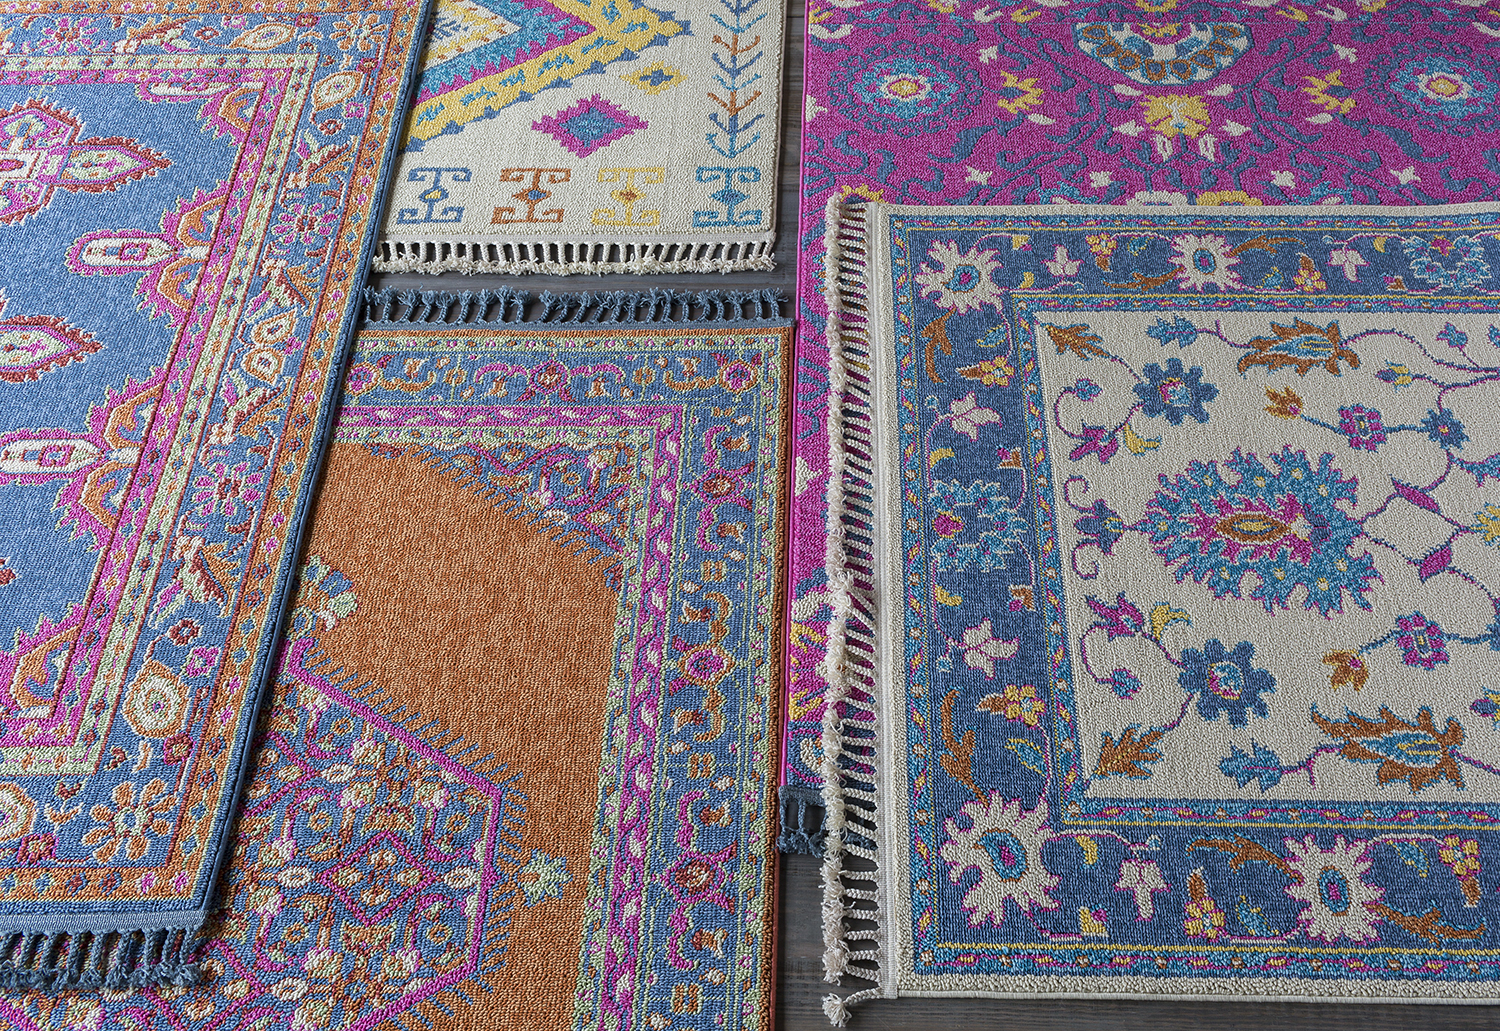 Surya S Machine Made Rug Offering Continues To Grow In Response The Increasing Demand For Fashionable Rugs At Affordable Prices